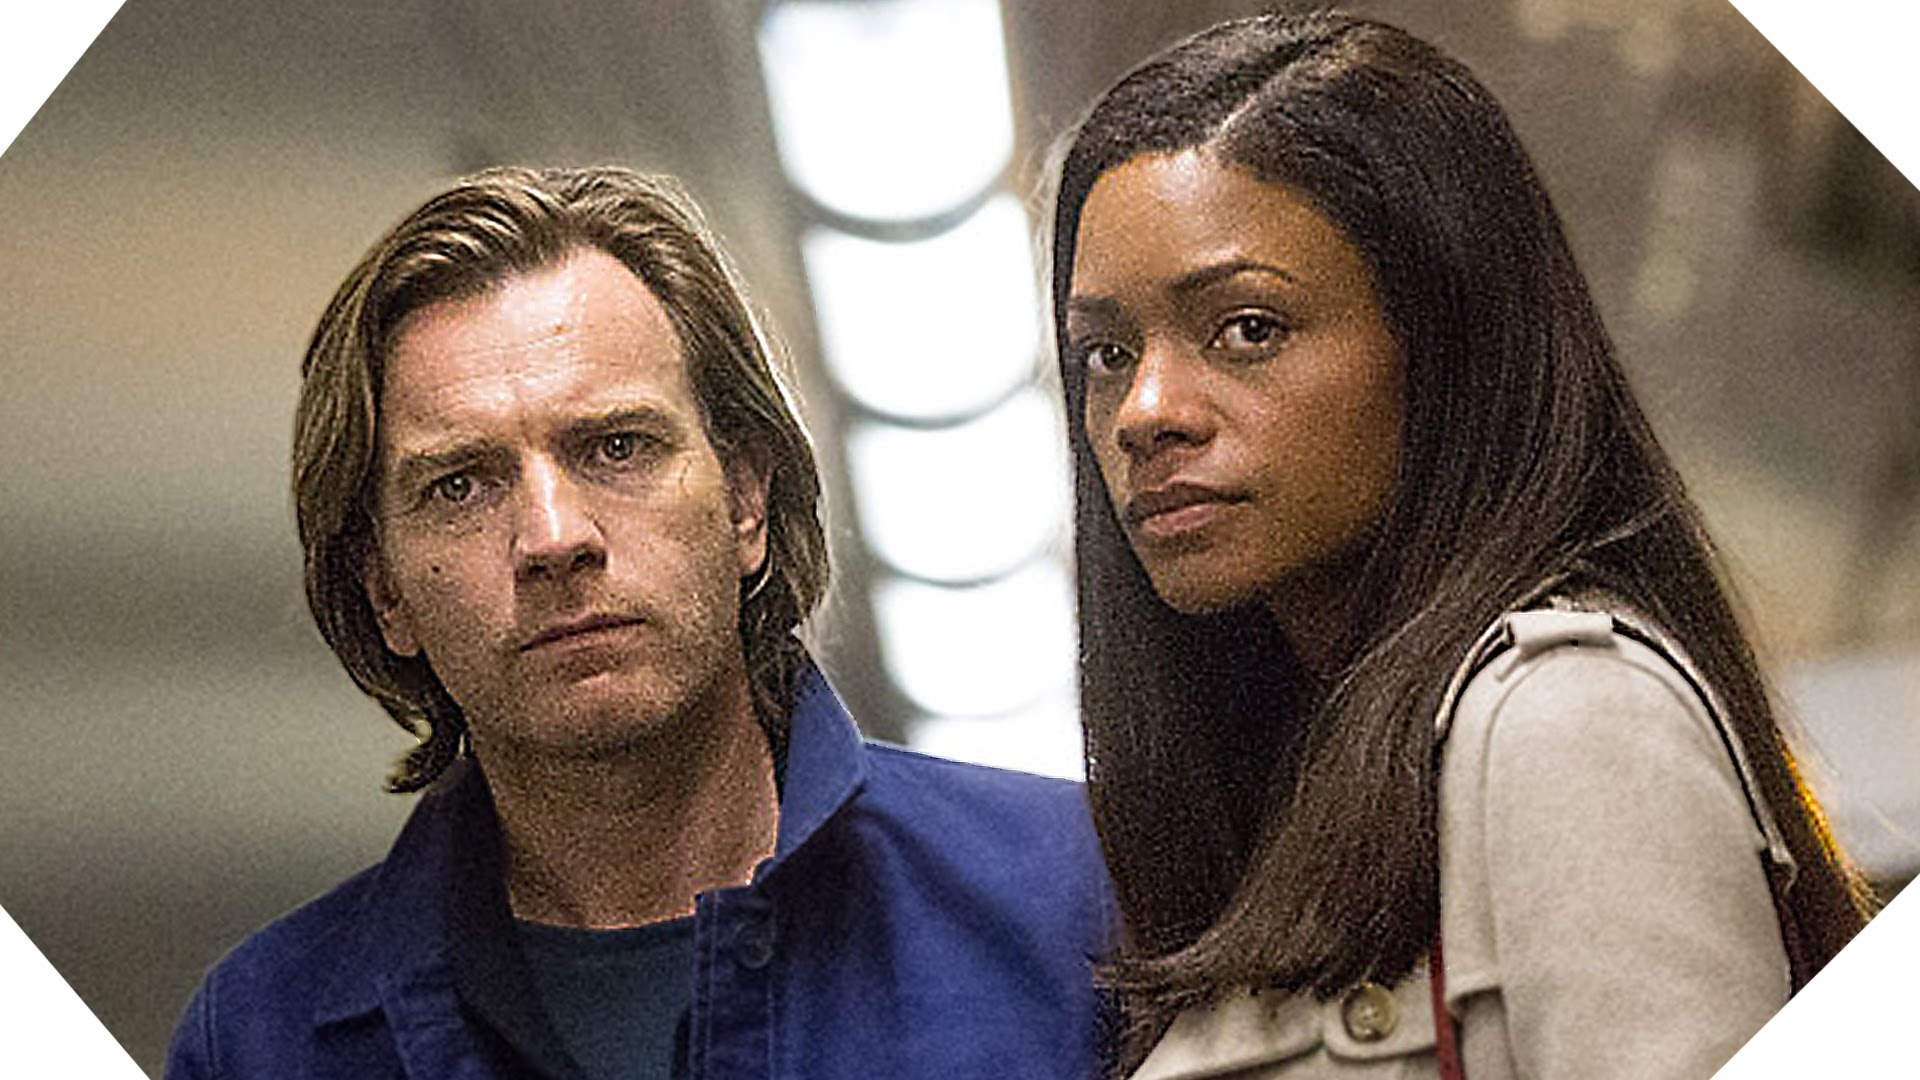 Amazing Our Kind Of Traitor Pictures & Backgrounds